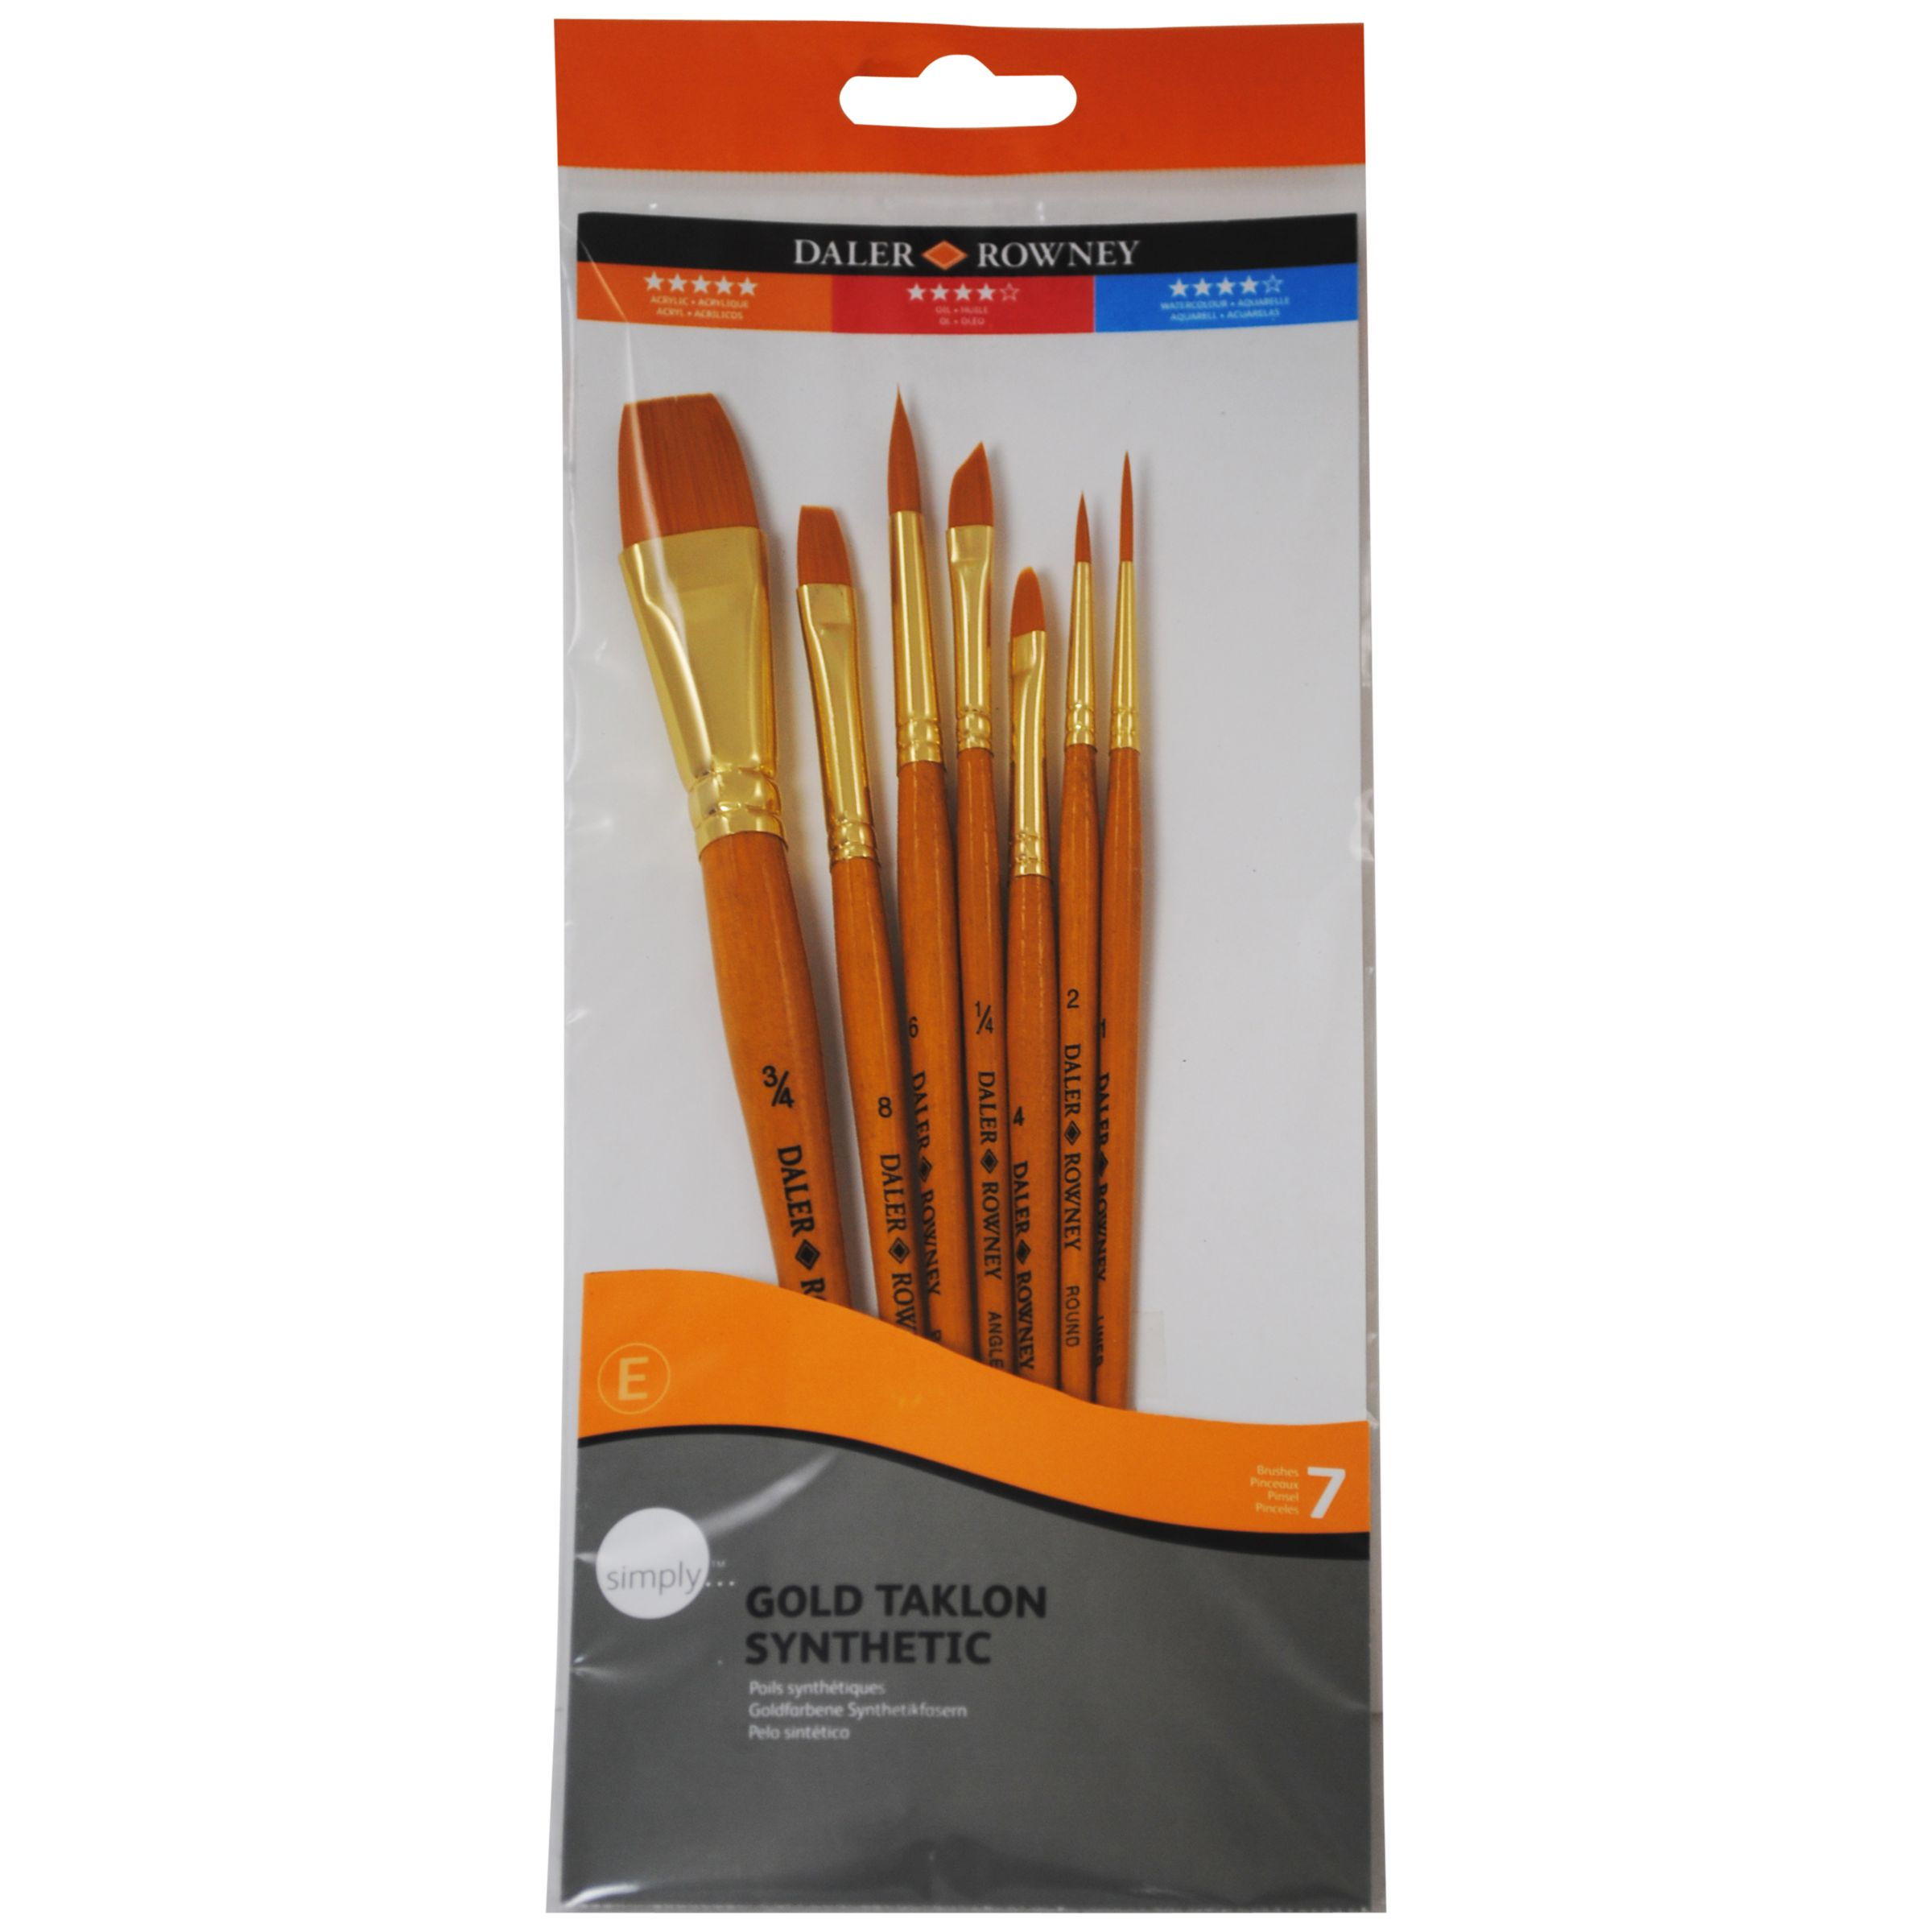 Daler-Rowney Gold Taklon Short Handled Brushes, Set of 7